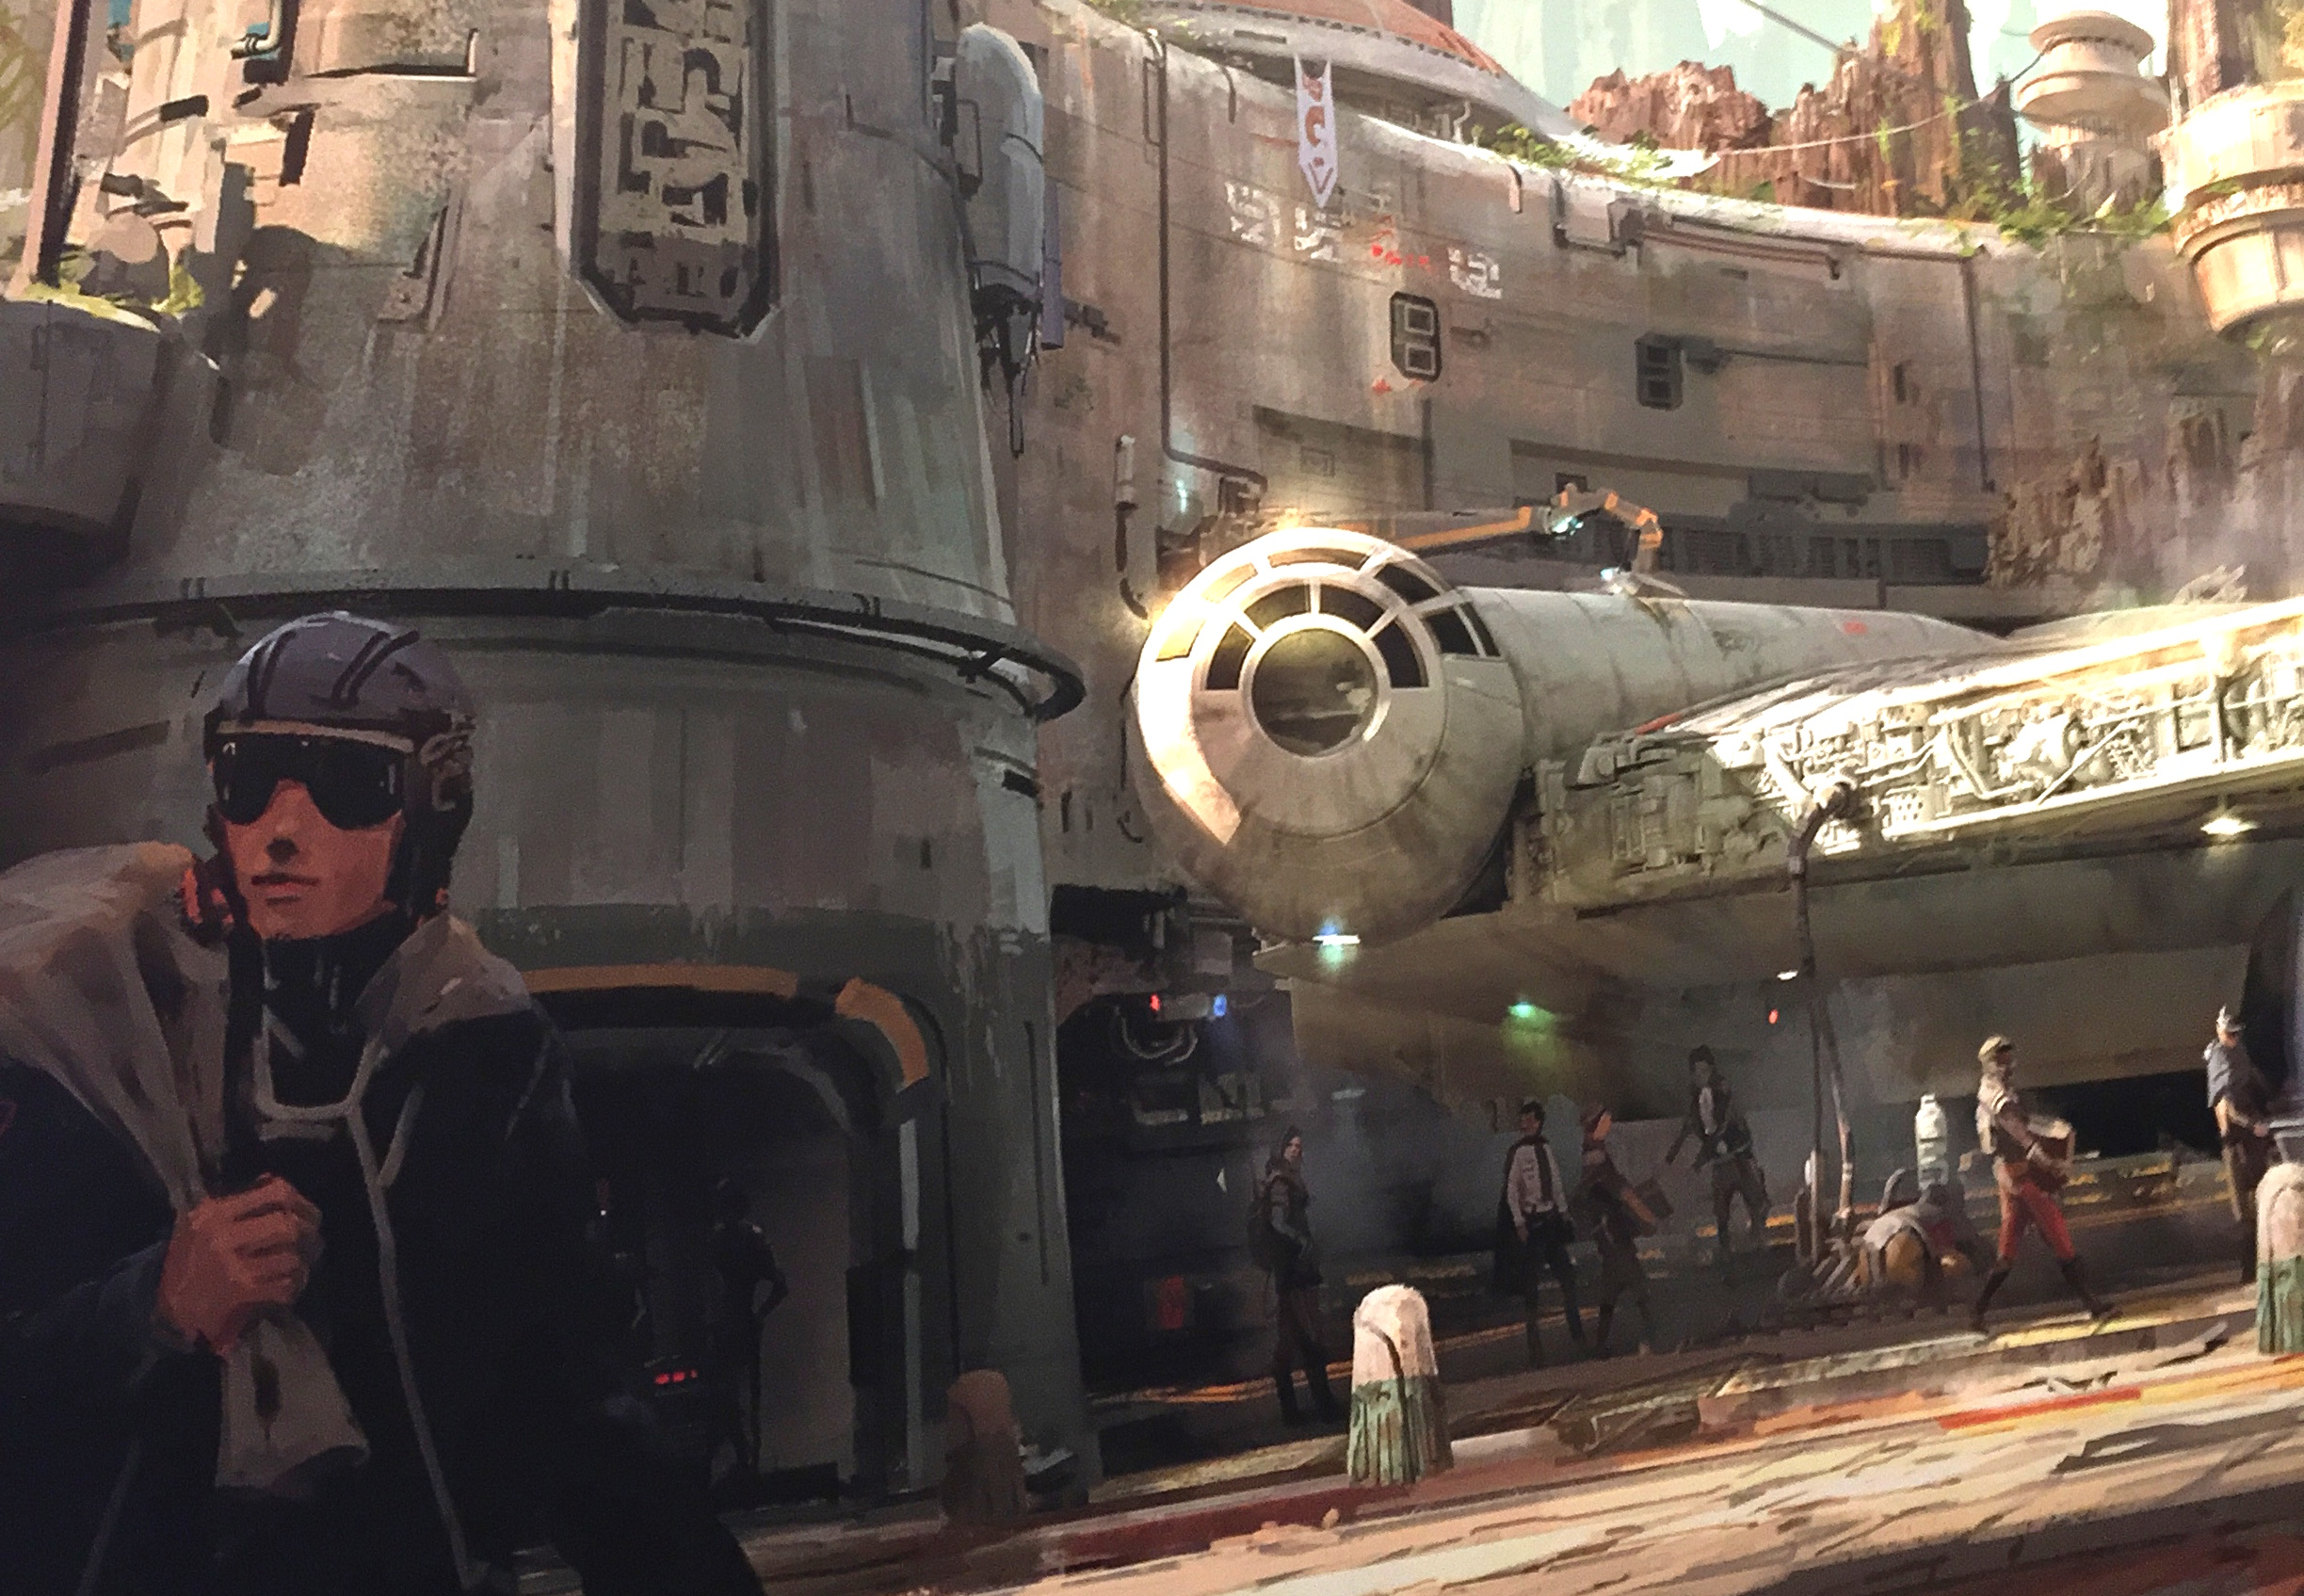 The first look at ALL of Star Wars Land is here, and omfg